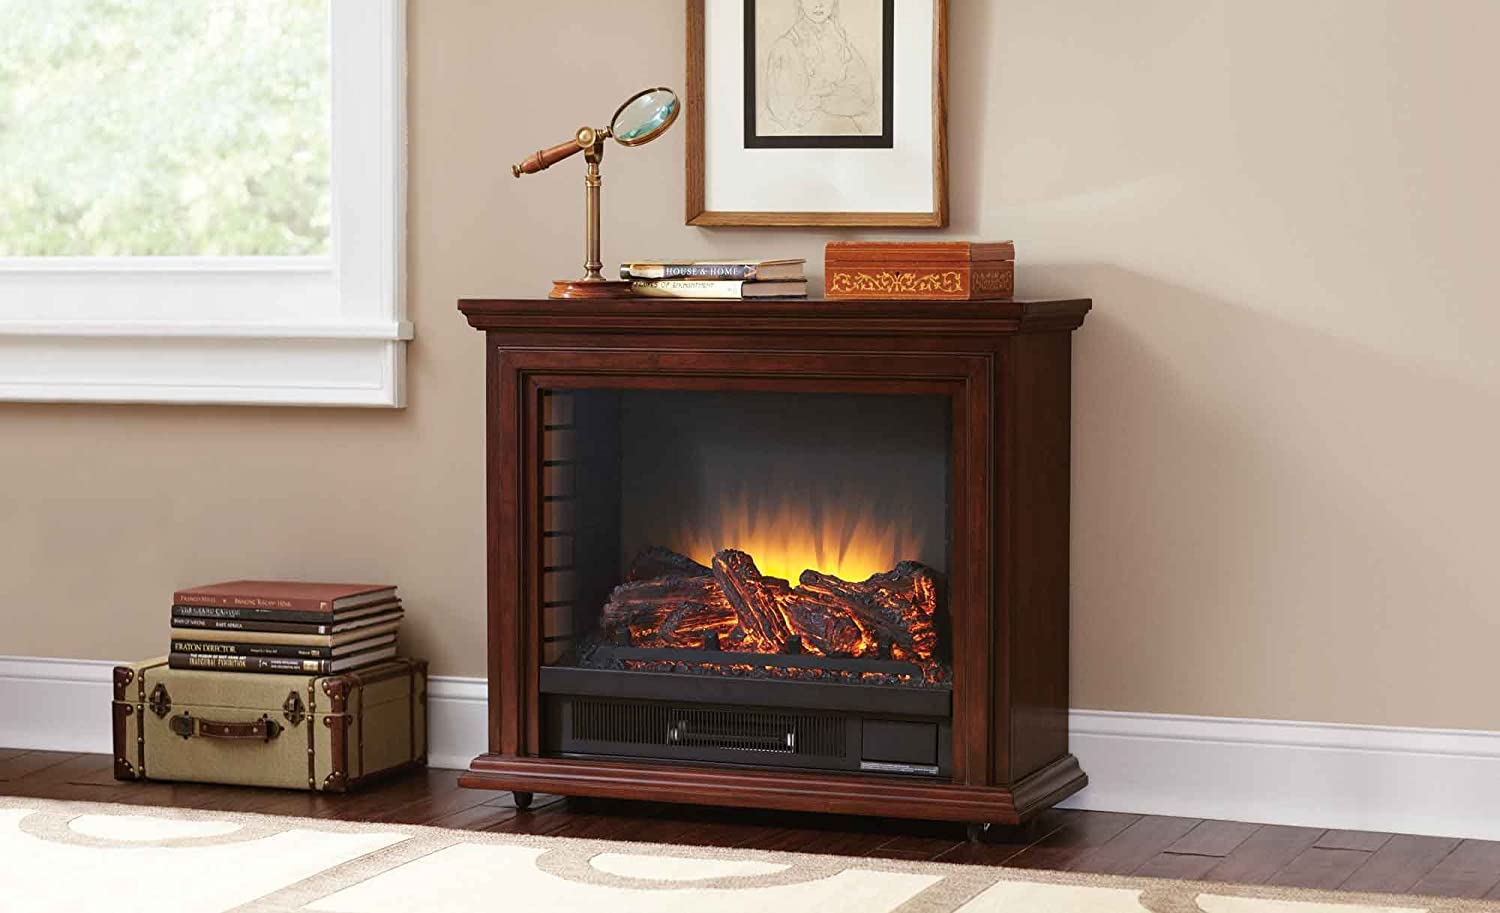 trending our designs fireplaces full please oer brochure view see fireplace electric download to collection below